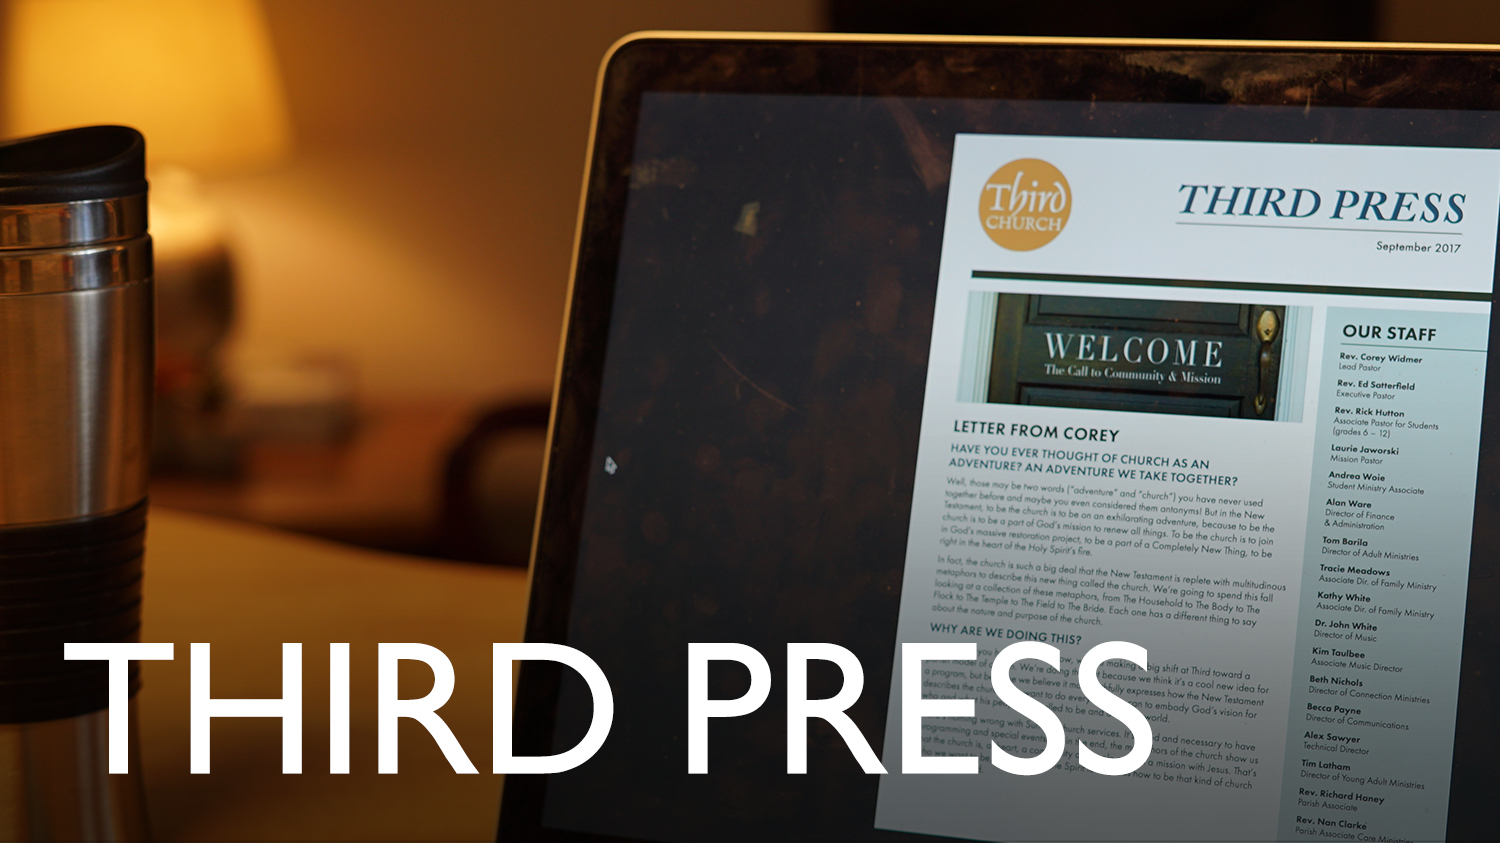 Third Press - Click here to read